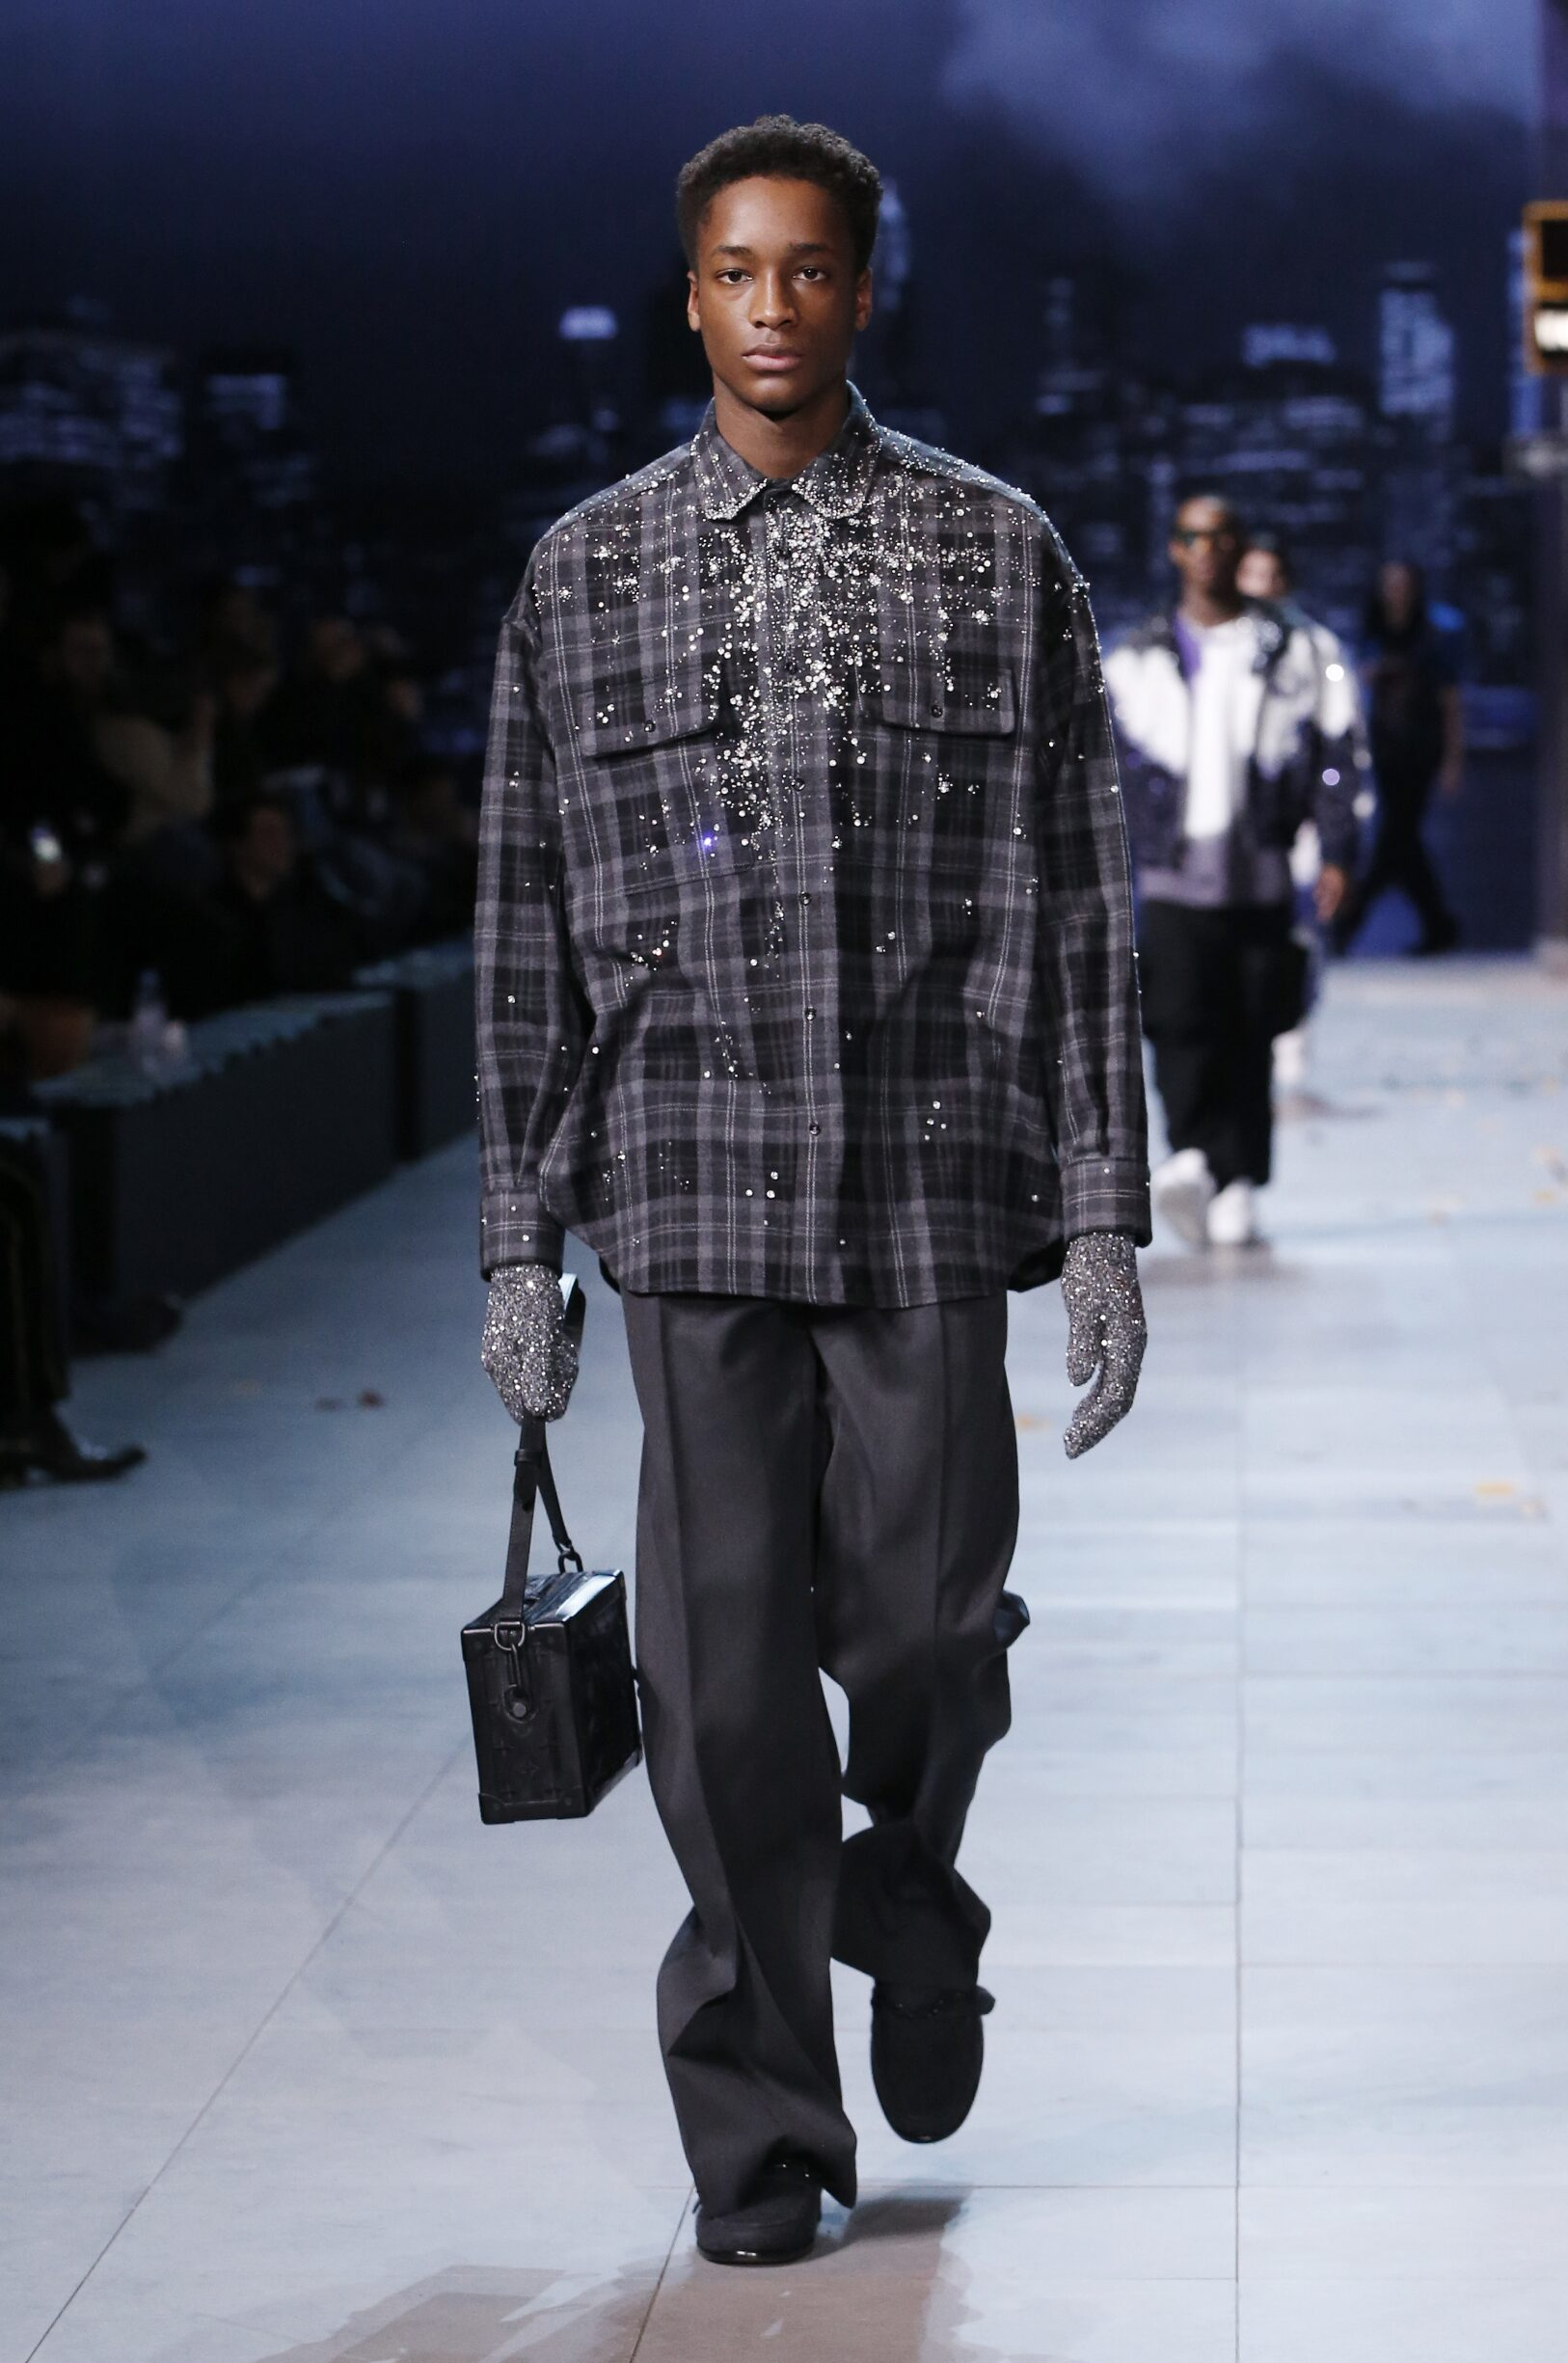 Catwalk Louis Vuitton Men Fashion Show Winter 2019